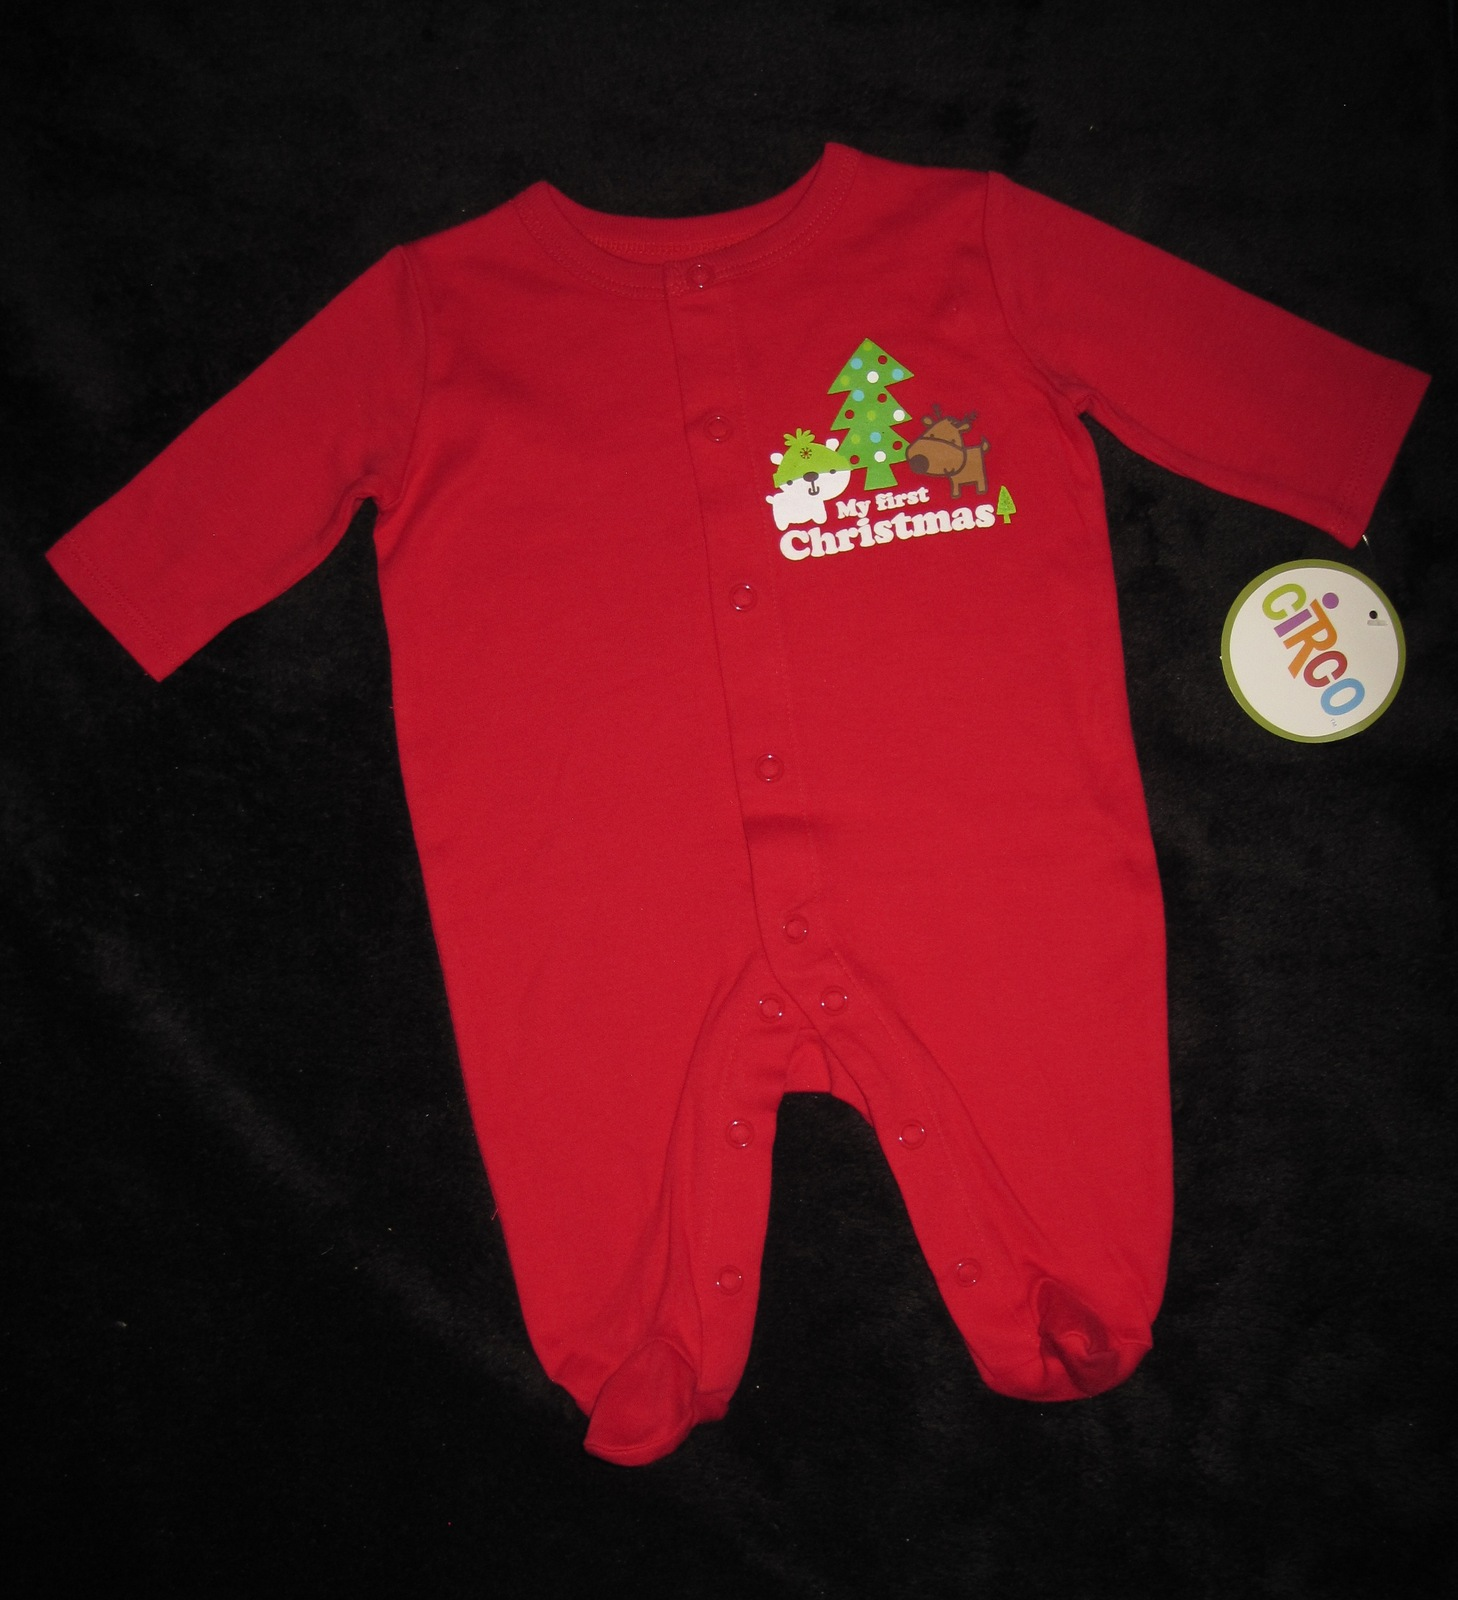 INFANTS 0-3 MONTHS - Circo - Footed My First Christmas Red SLEEPER - $10.00